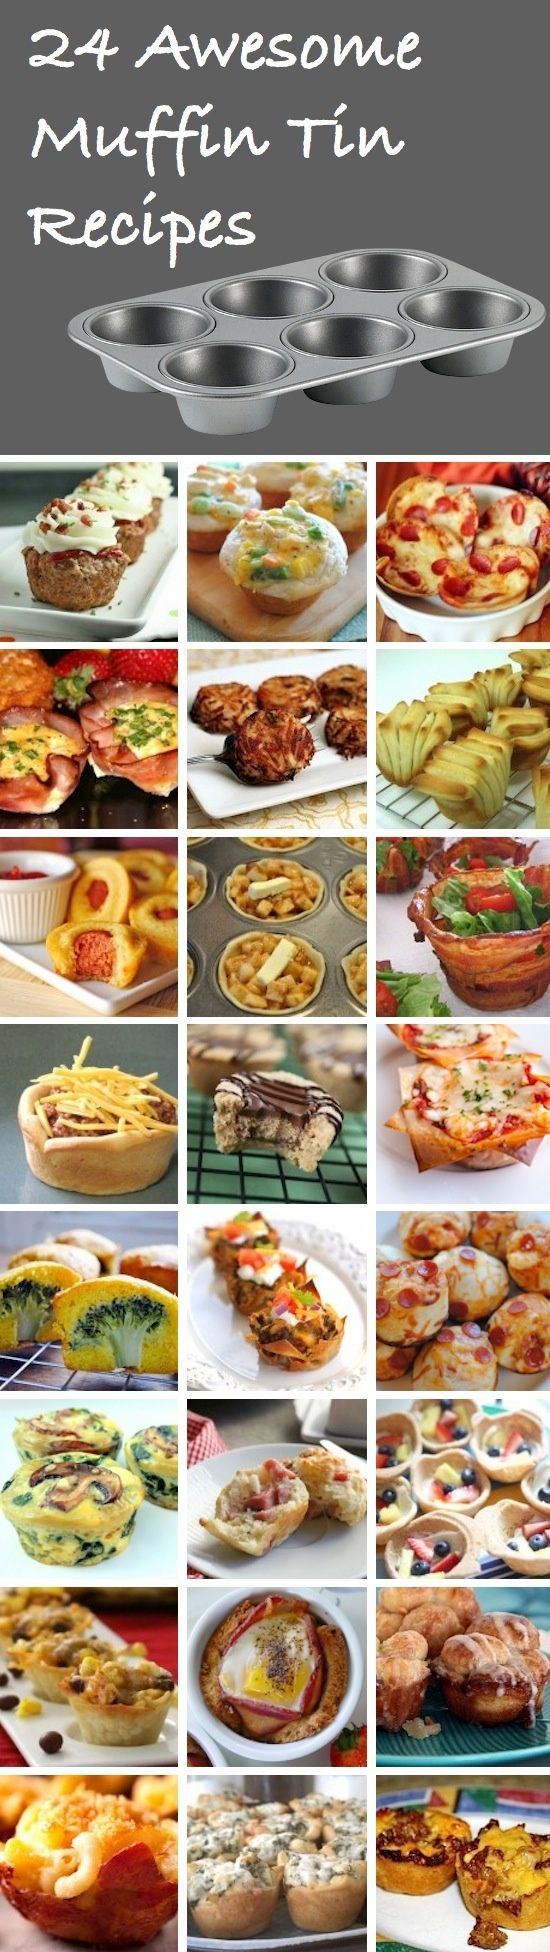 24 Awesome Muffin Tin Recipes muffin recipes creative